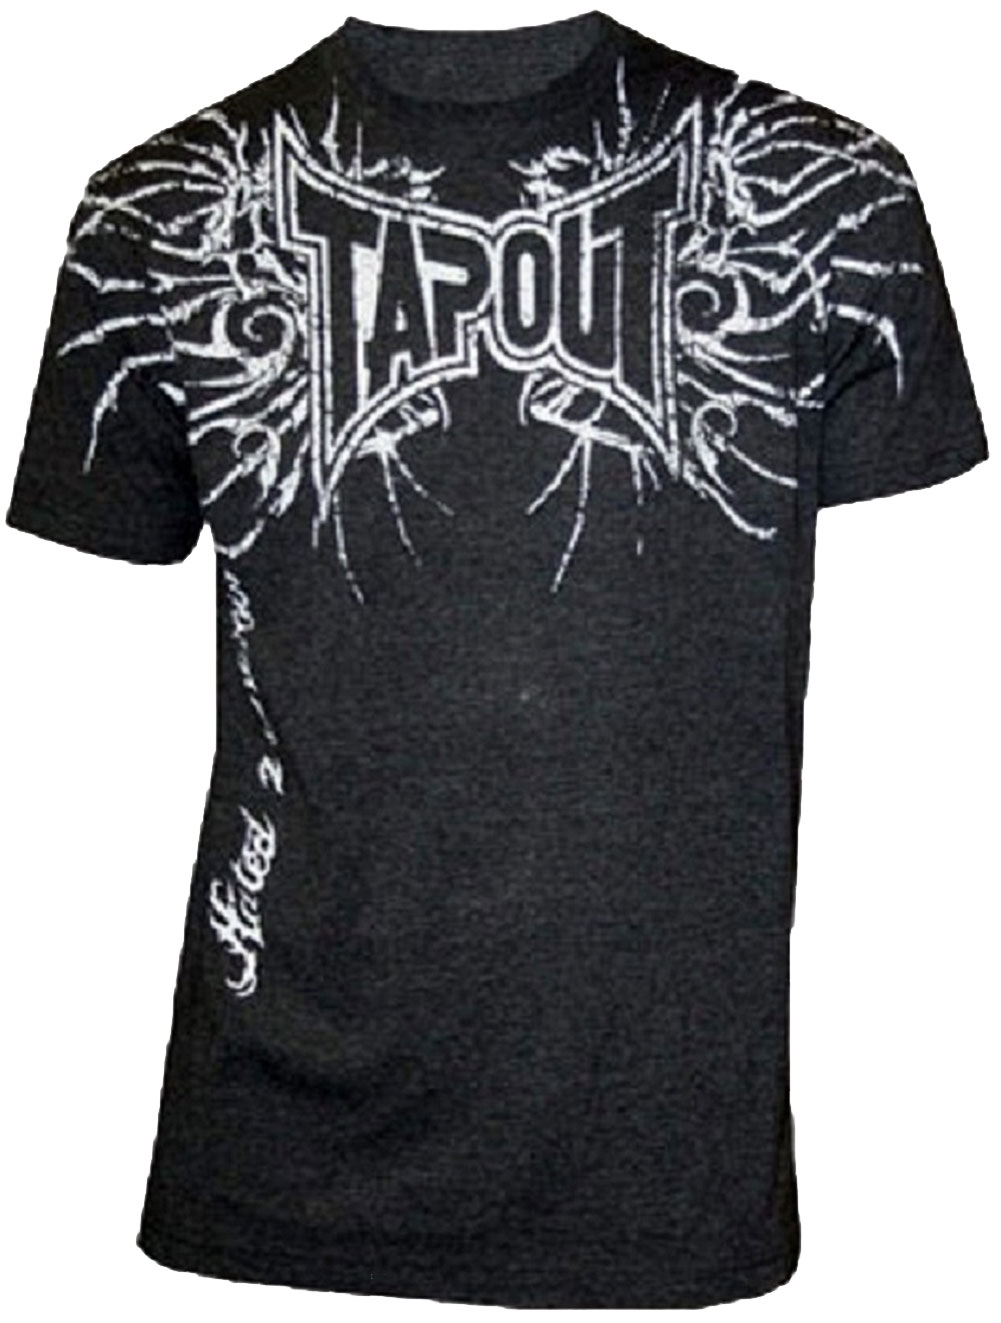 Oct 06, · Actually, I believe this person is curious as to what tapout ment for the logo. The 3 Tapout guys Punkass, Skyscraper, and Mask all stated that the Status: Resolved.